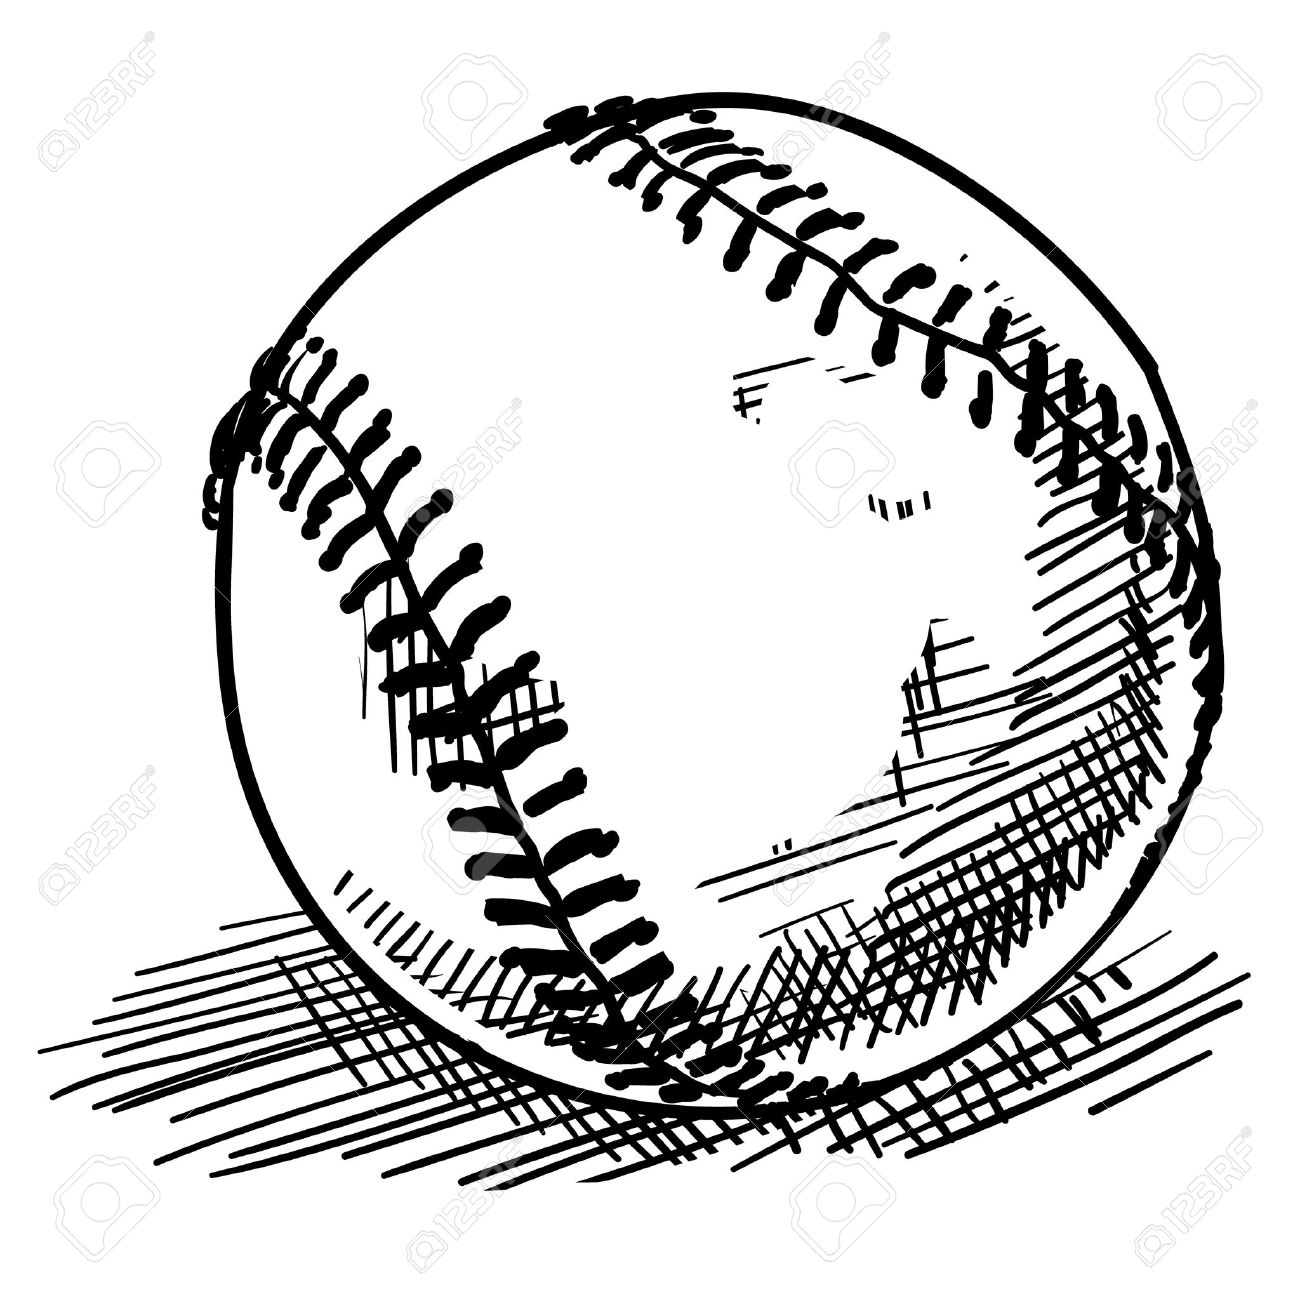 Doodle Style Baseball Sports Vector Illustration Royalty Free ...